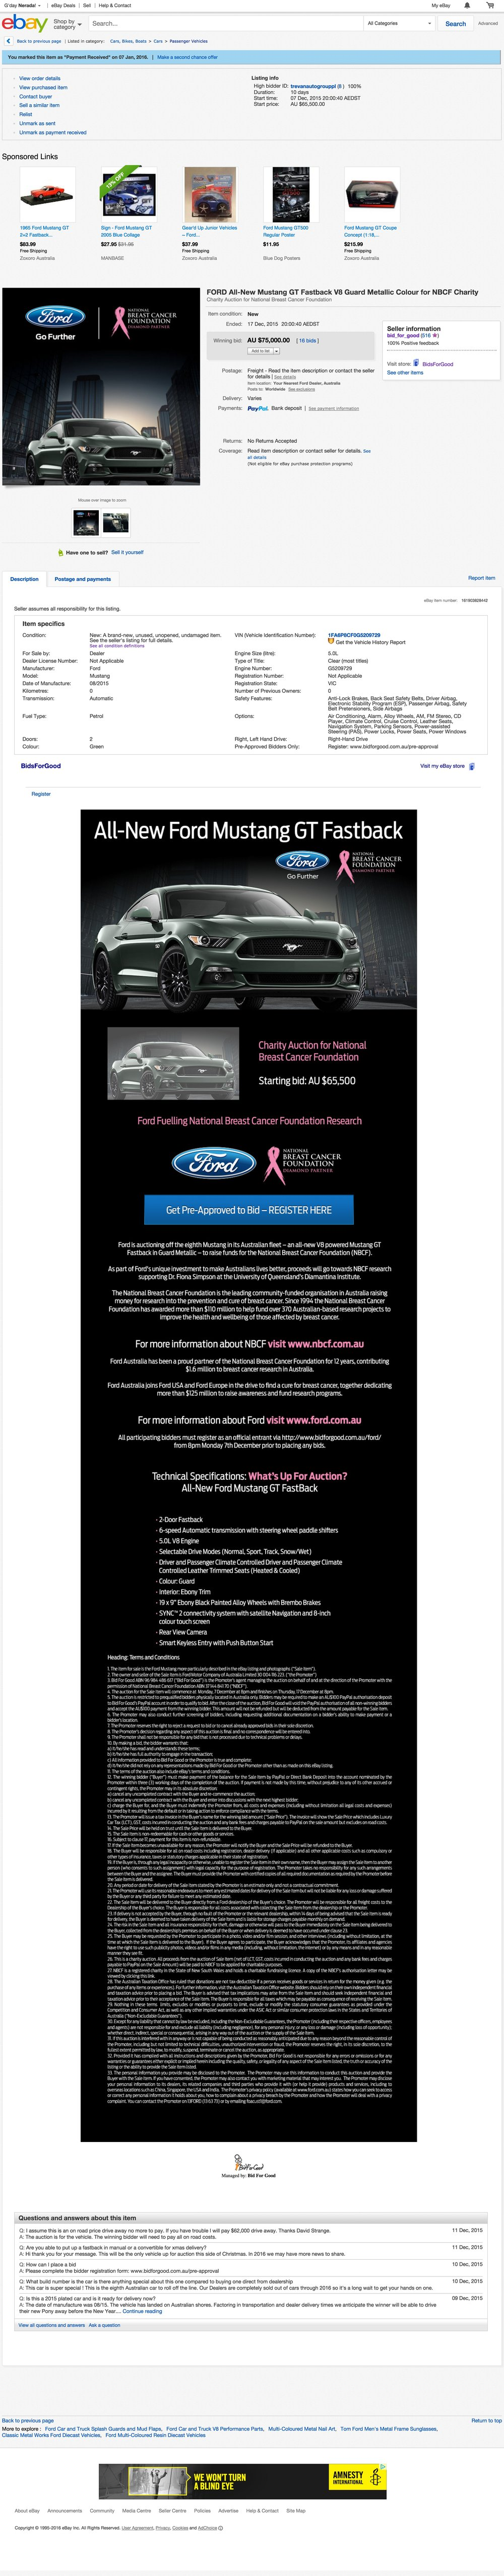 Ford Mustang GT - $75,000 raised for NBCF